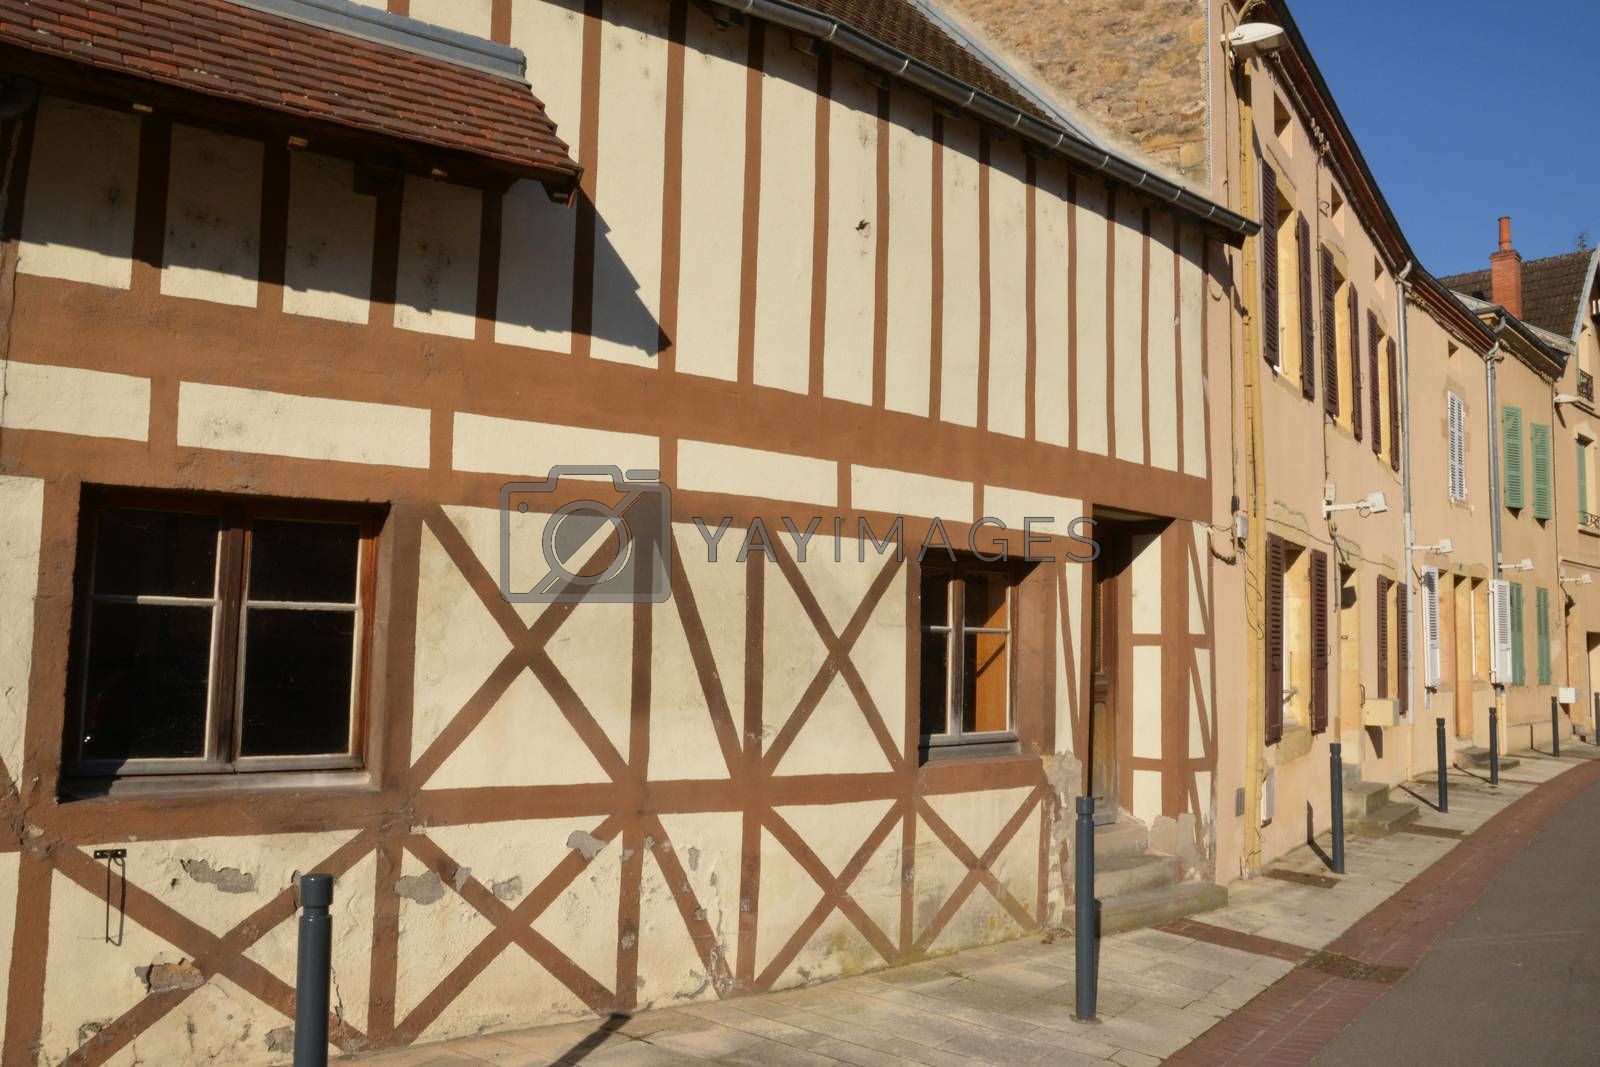 Bourgogne, the picturesque city of Paray le Monial